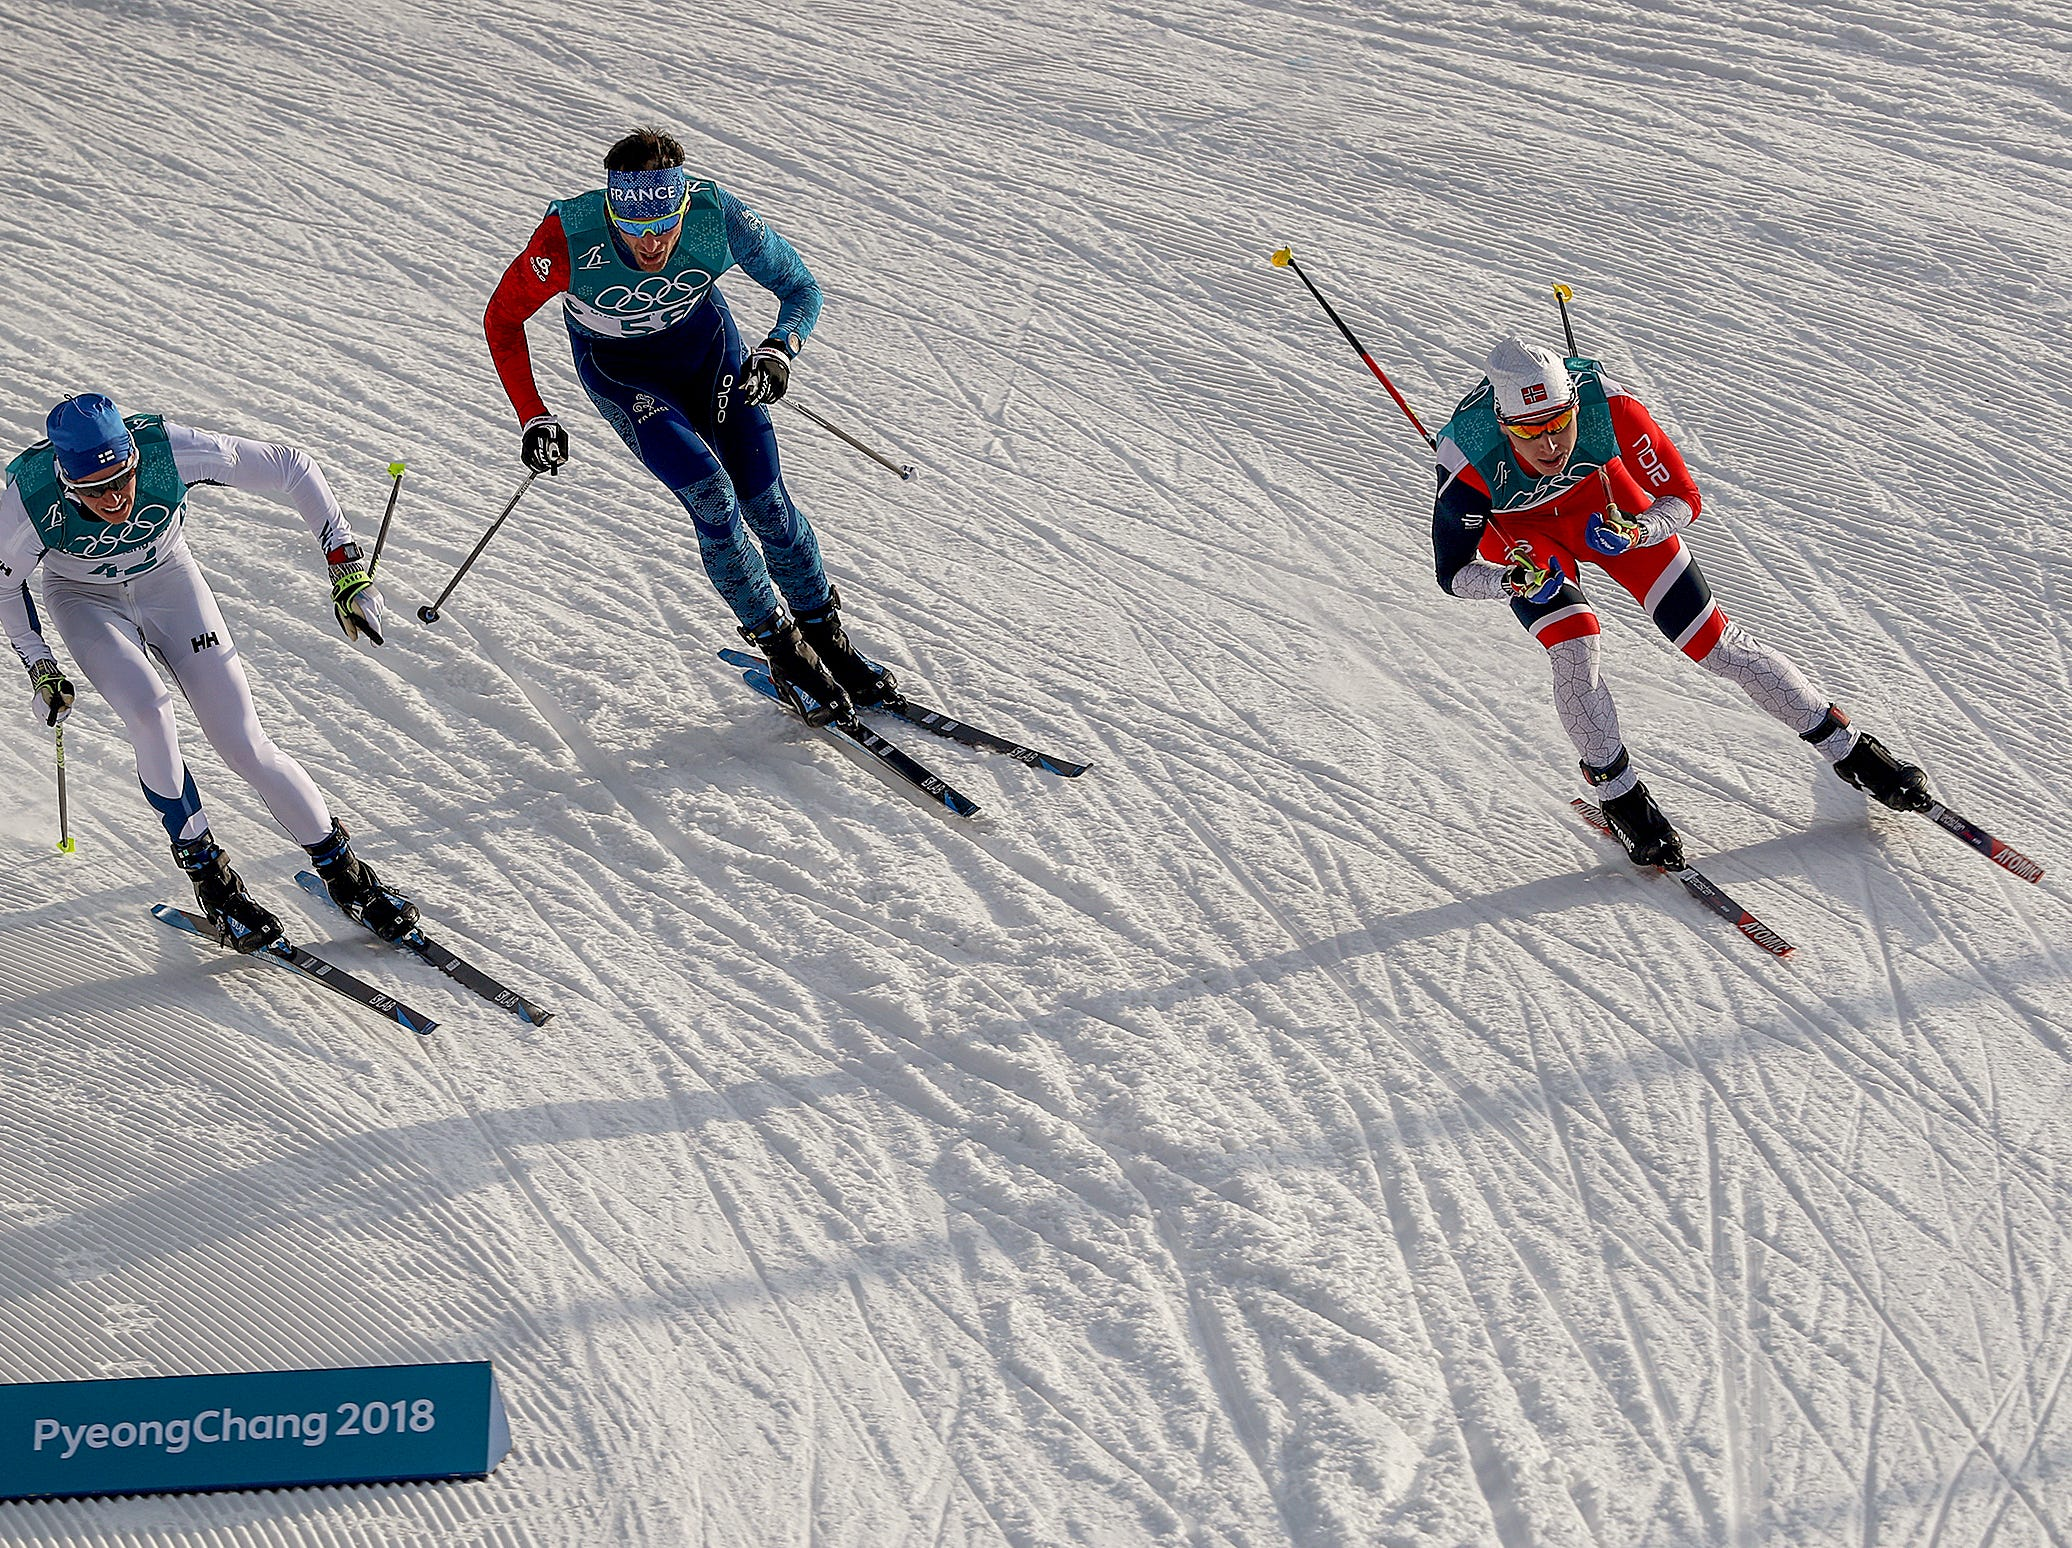 Feb 16, 2018; Pyeongchang, South Korea; Finland's Matti Heikkinen, left,  Sweden's Daniel Rickardsson,middle, and Norway's Simen Hegstad Krueger,right, round a turn at the Men's 15k free Cross Country finals during the Pyeongchang 2018 Olympic Winter Games at Alpensia Cross-Country Centre. Mandatory Credit: Matt Kryger-USA TODAY Sports